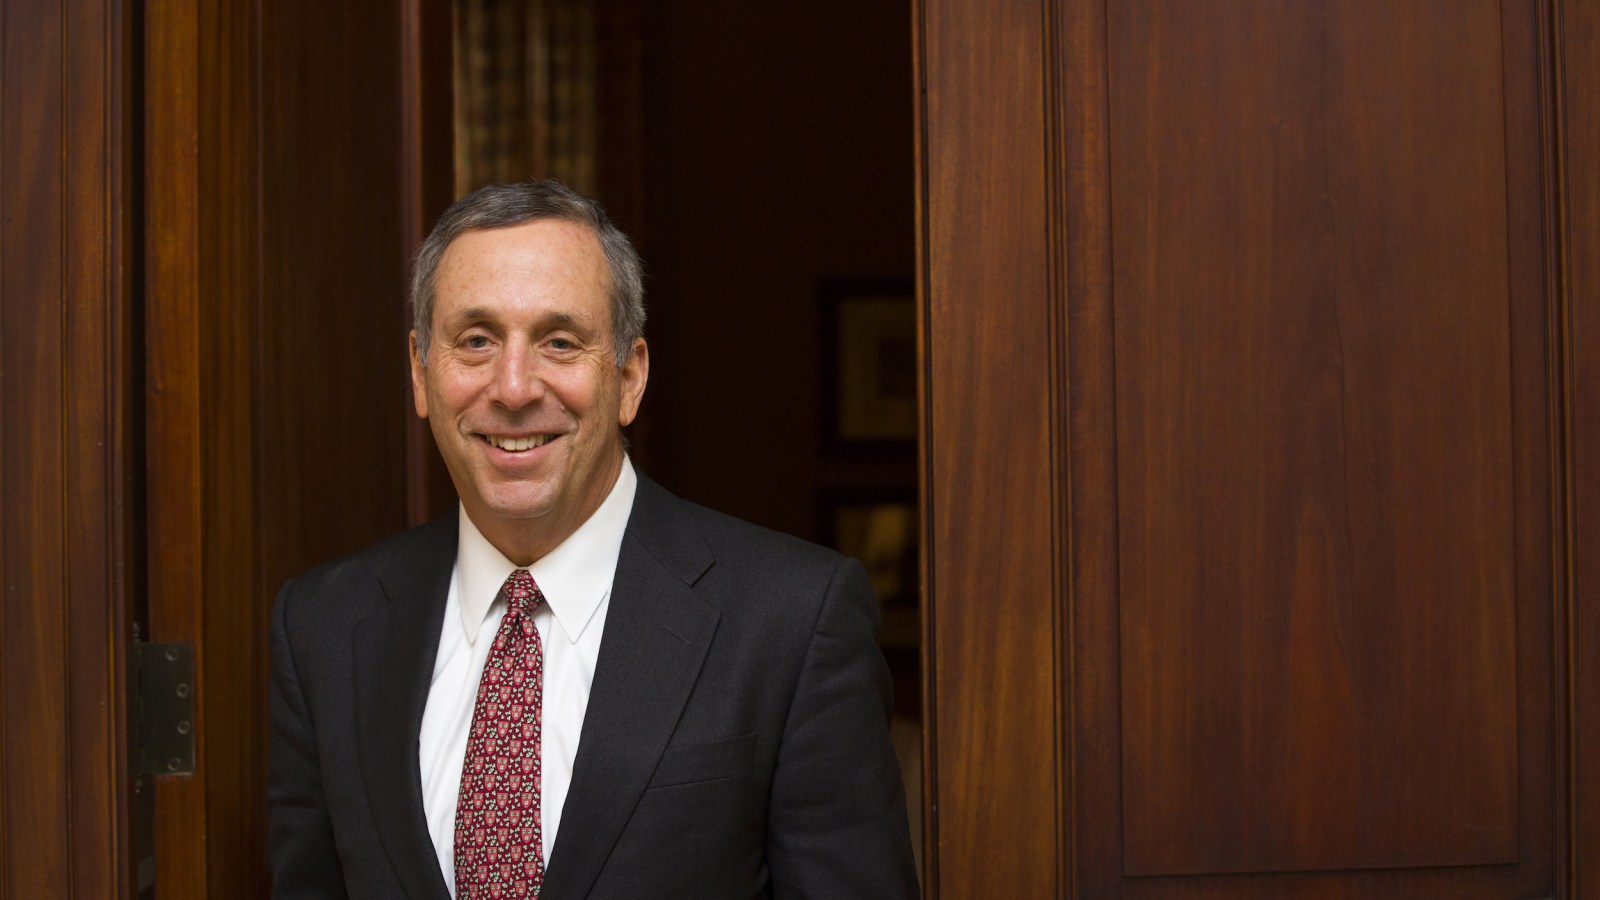 Lawrence Bacow Will Be Next Harvard President